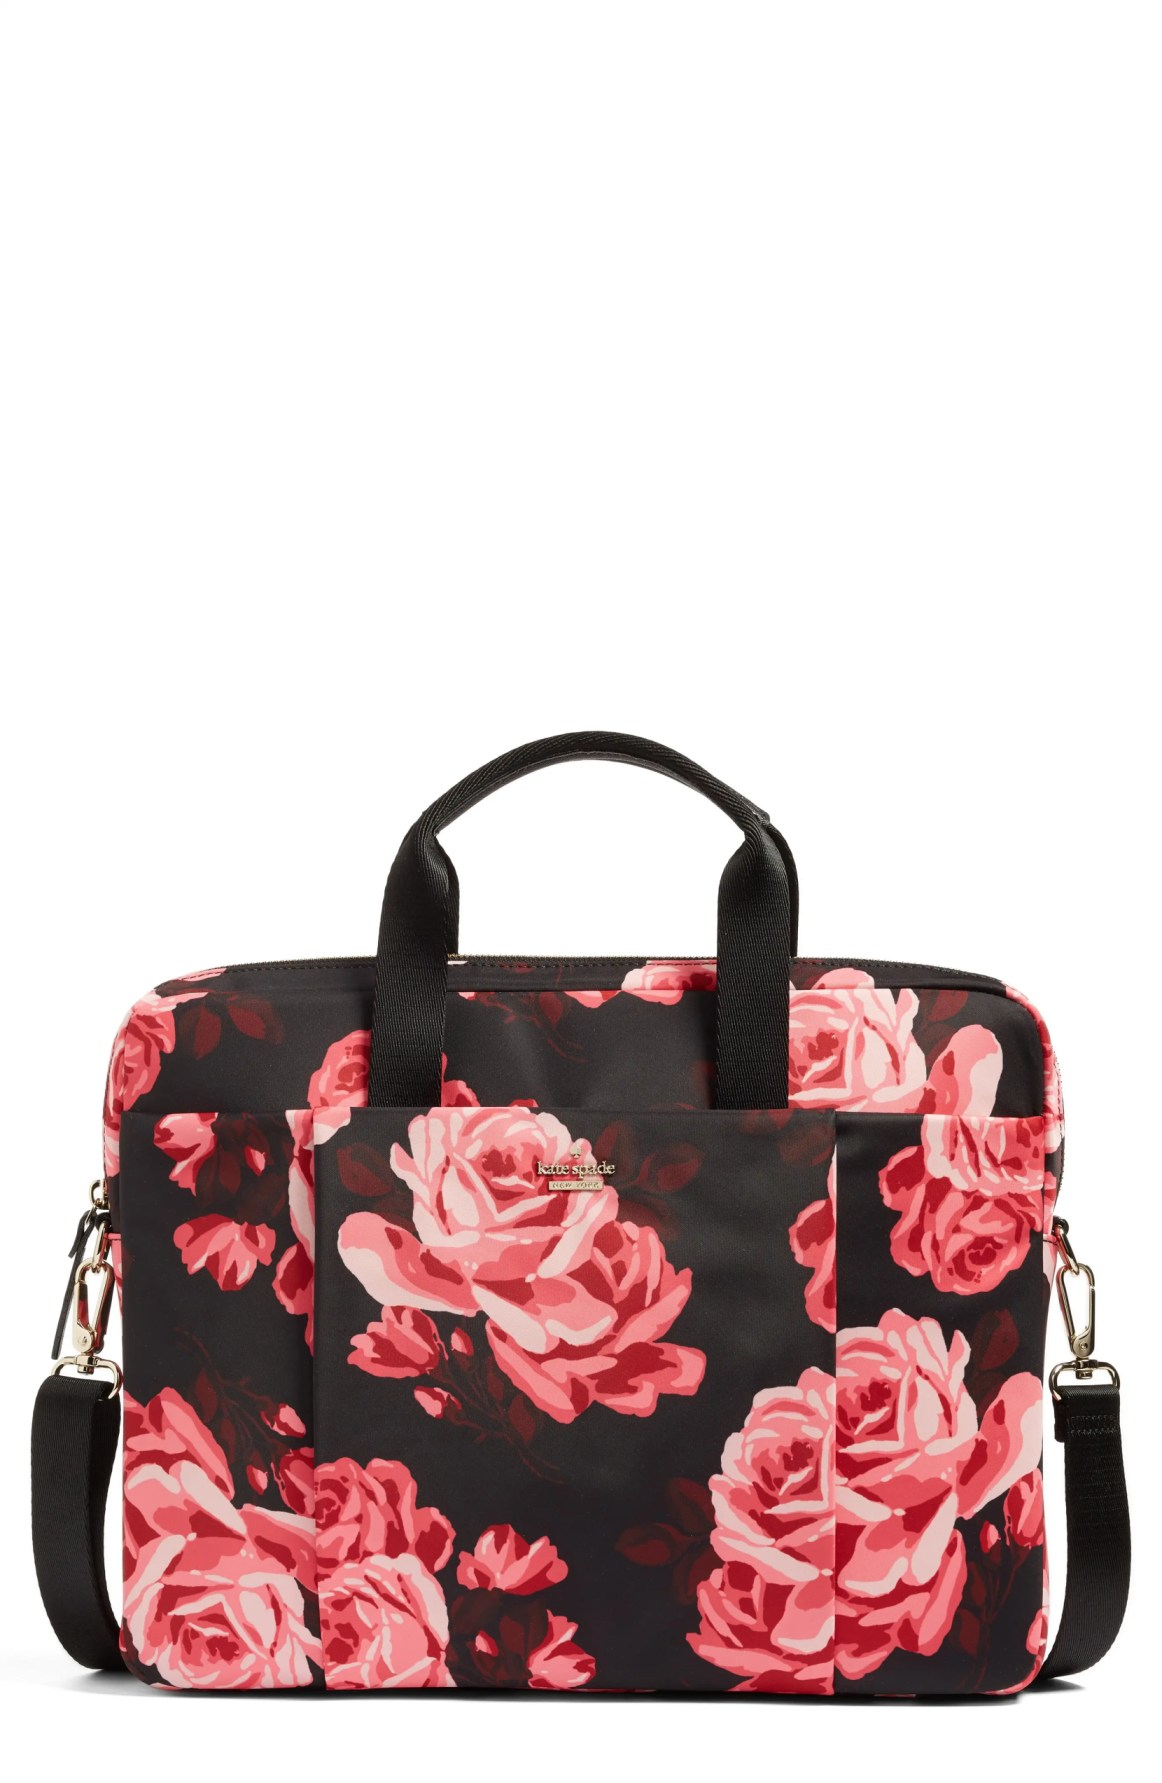 6a9255a6304 Kate Spade Garden Flower Bag | Gardening: Flower and Vegetables